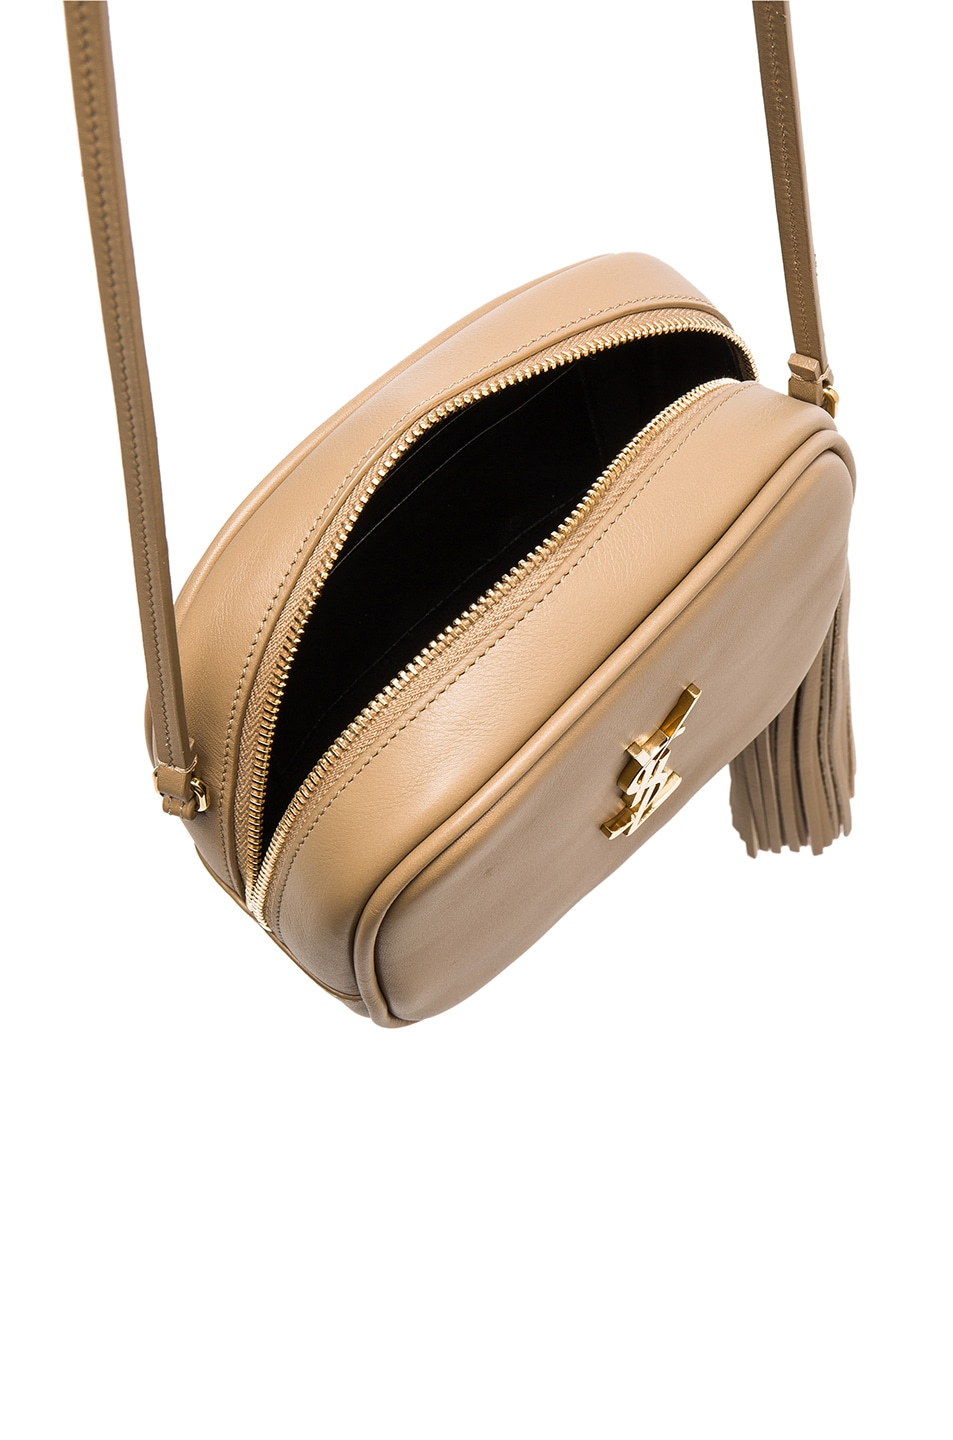 Image 5 of Saint Laurent Blogger Bag in Deep Beige   Black 5cf6129a5f